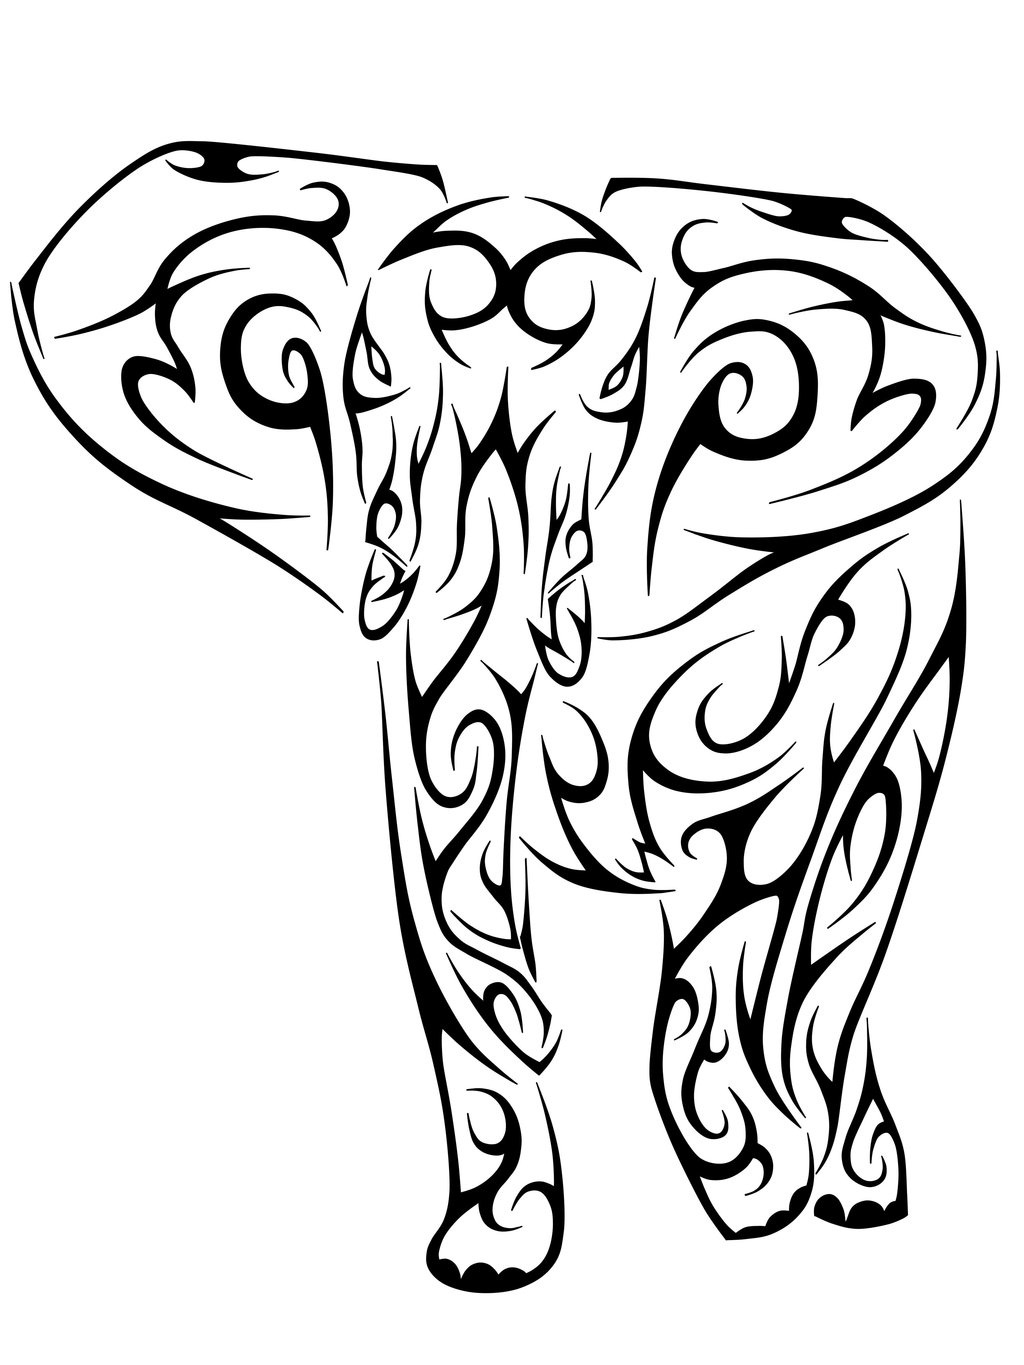 Elephant Tattoos Designs, Ideas and Meaning | Tattoos For You